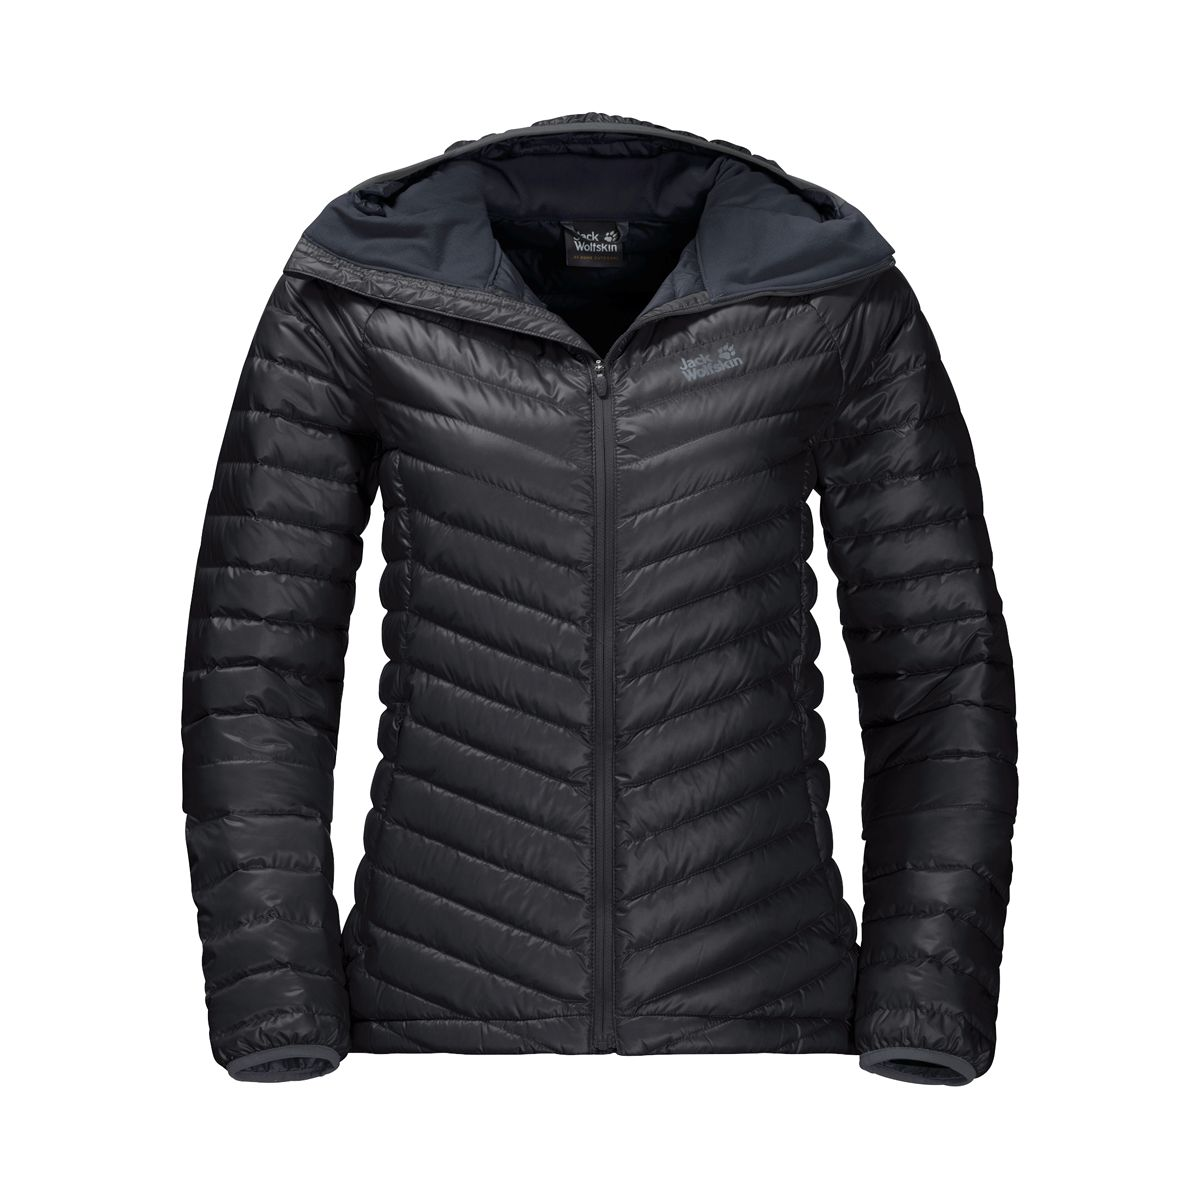 ATMOSPHERE JKT W women's down jacket